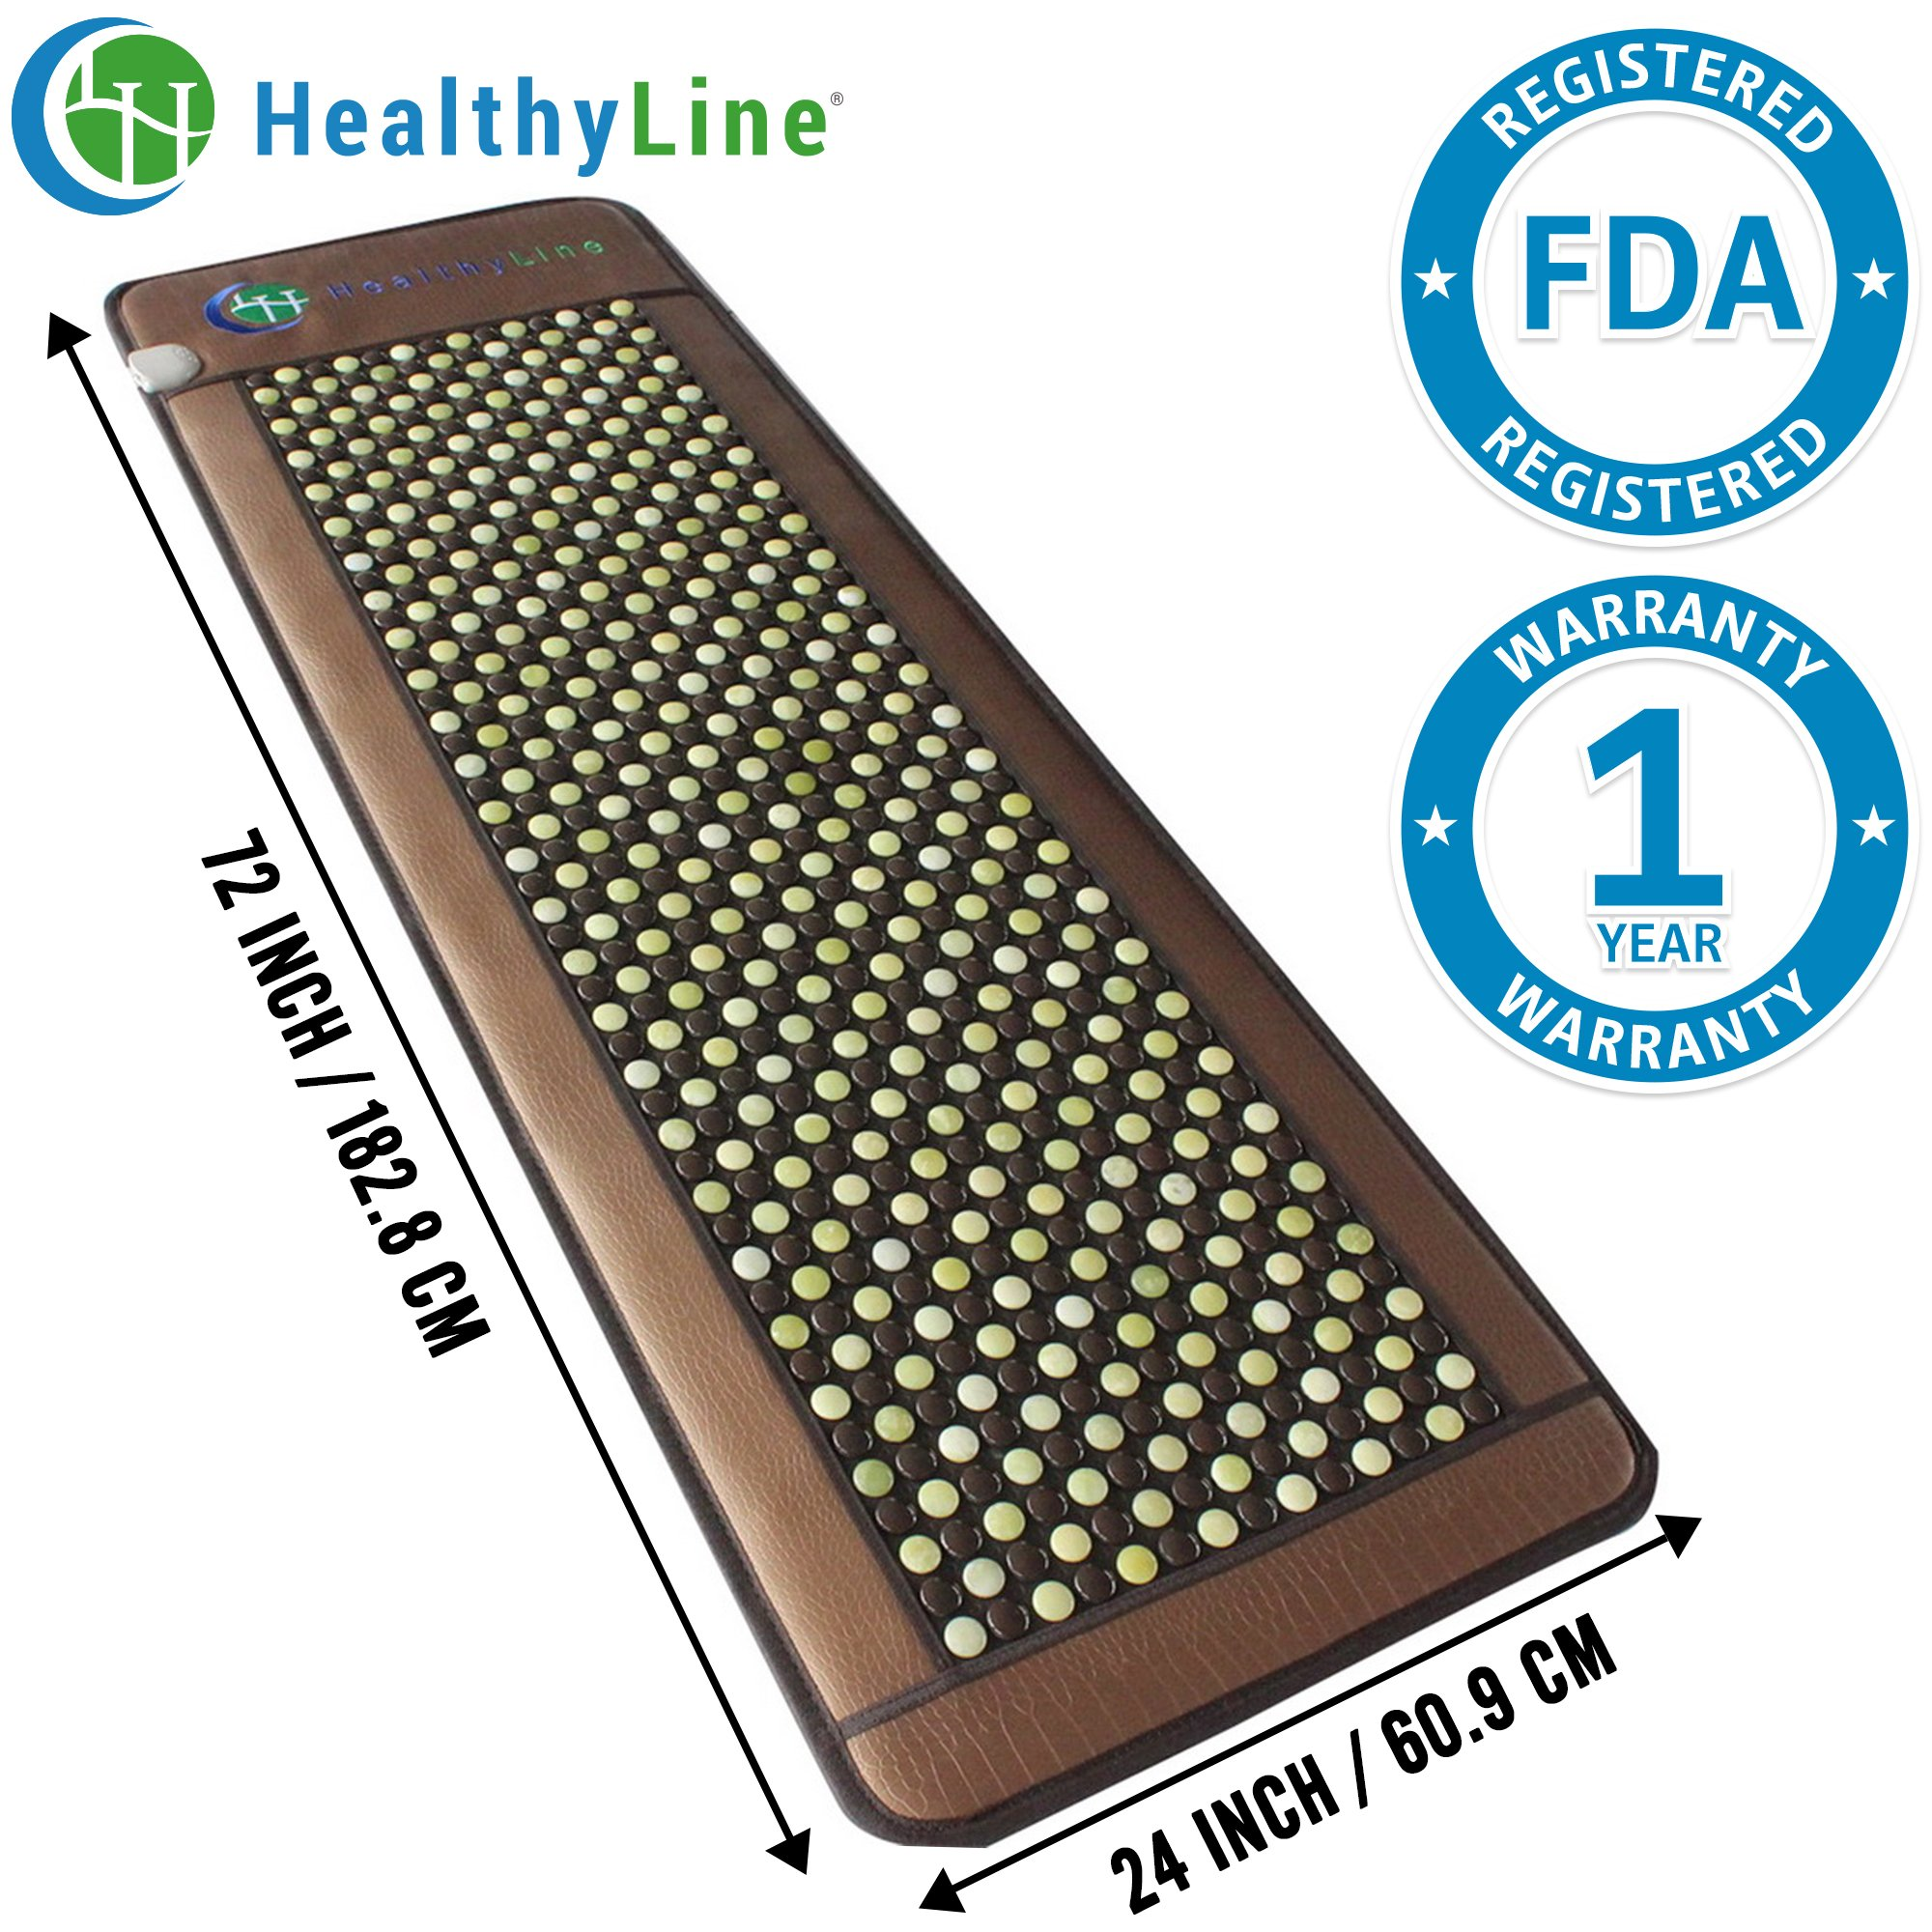 HealthyLine Far Infrared Heating Mat - Promotes Pain & Stress Relief | Natural Jade & Tourmaline 72''x24'' |​​​​​ Negative Ions (Large & Firm) | FDA